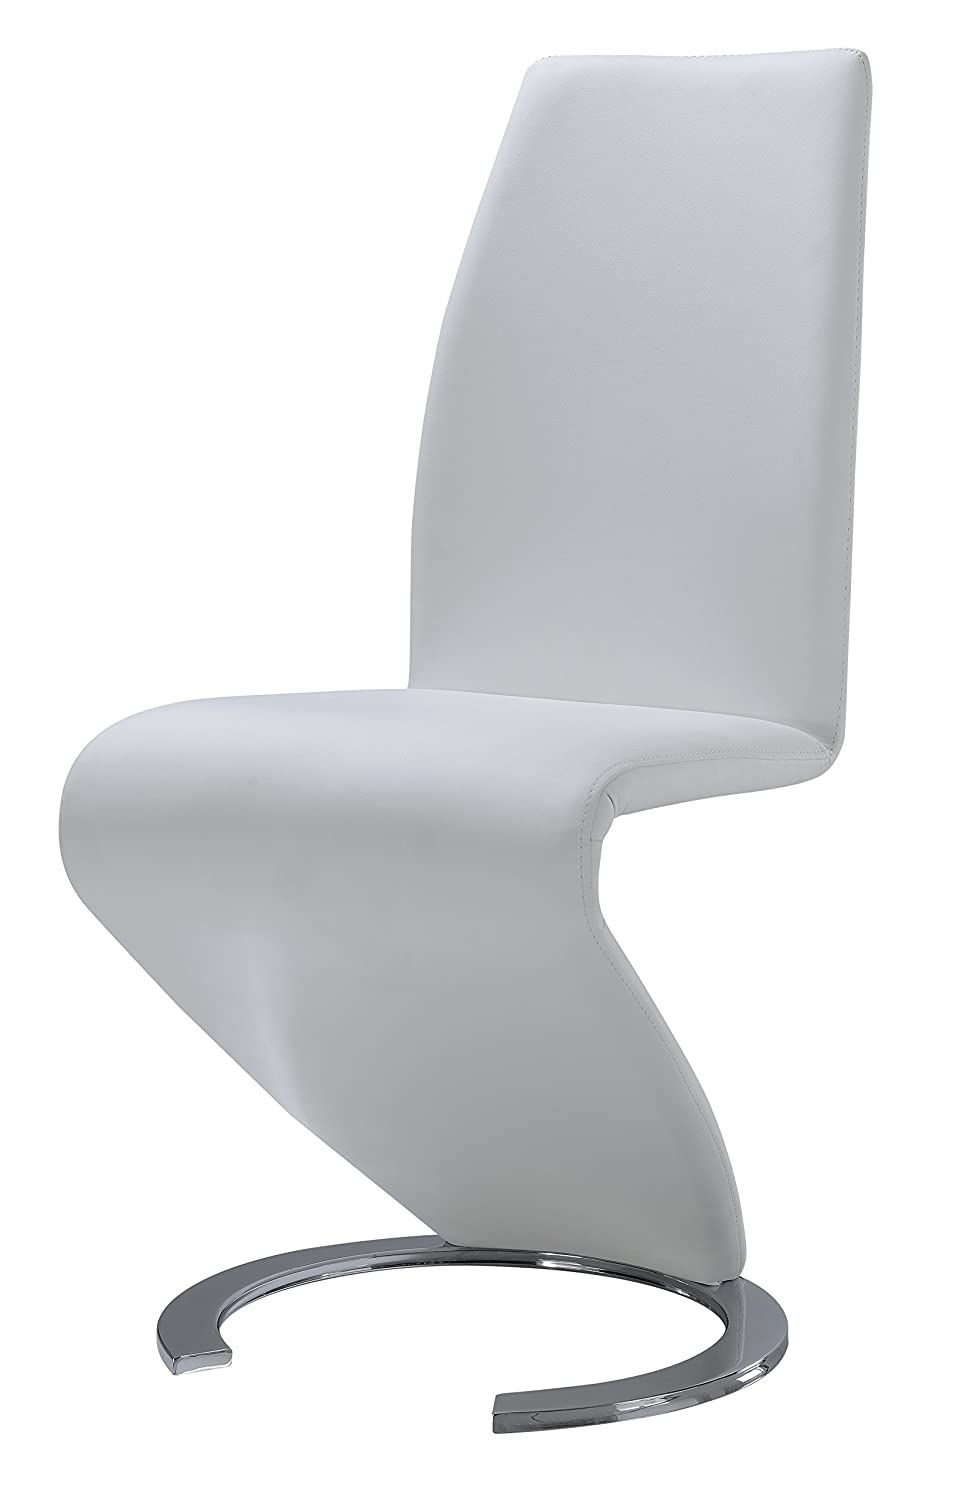 Amazoncom Global Furniture Dining Chair White PU Chairs - Leaky faucet bathroolearn leather dining room chairs on sale